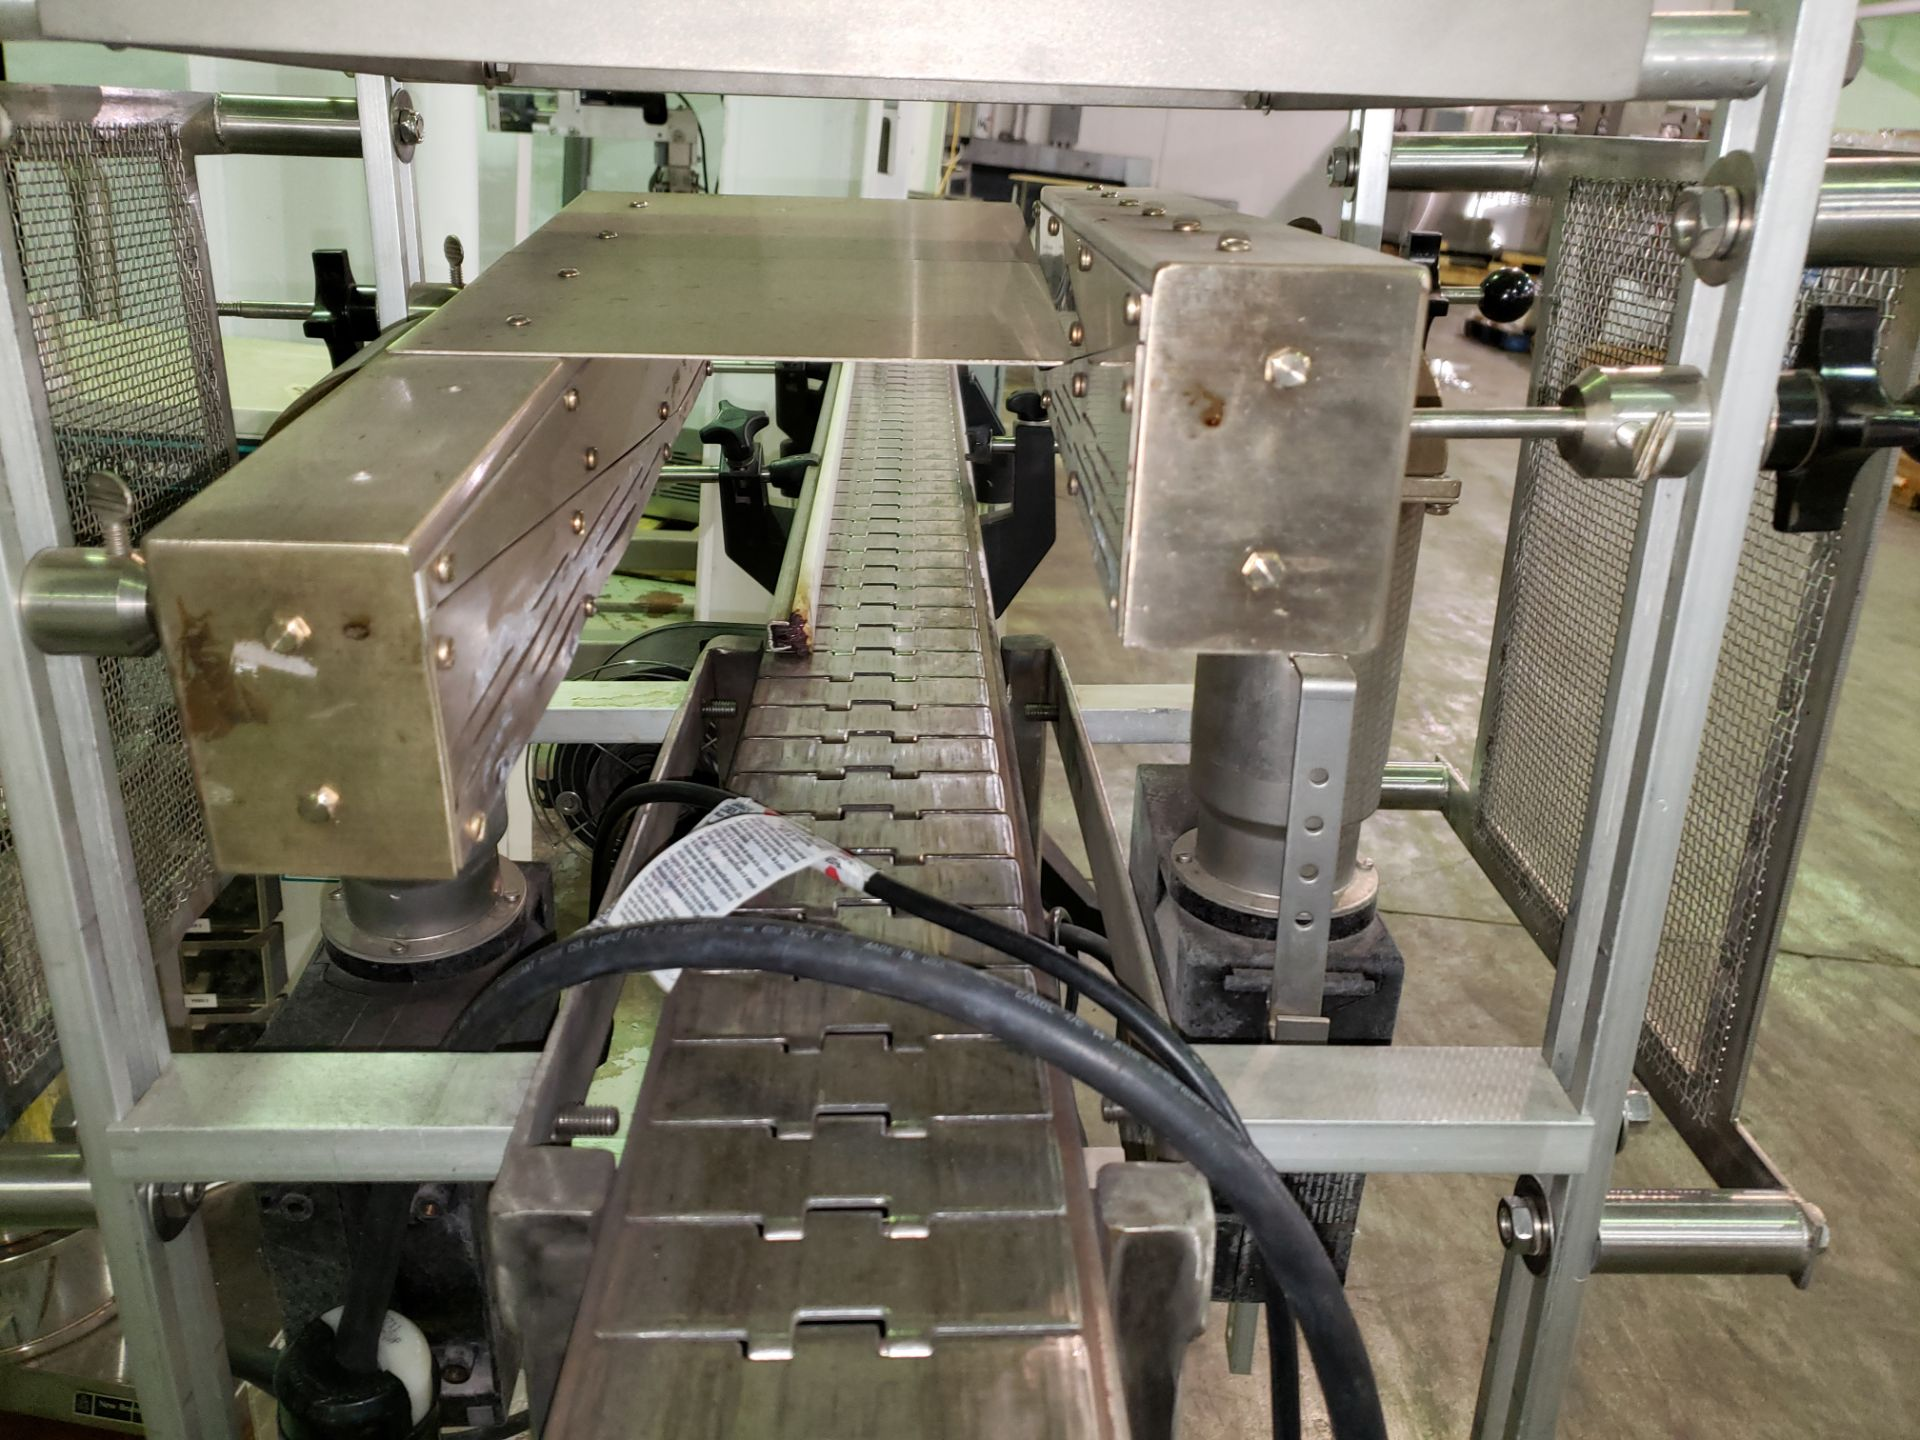 """Lot 8 - Used 84"""" long x 4.5"""" wide Leister drying conveyor, stainless steel construction with carbon steel"""